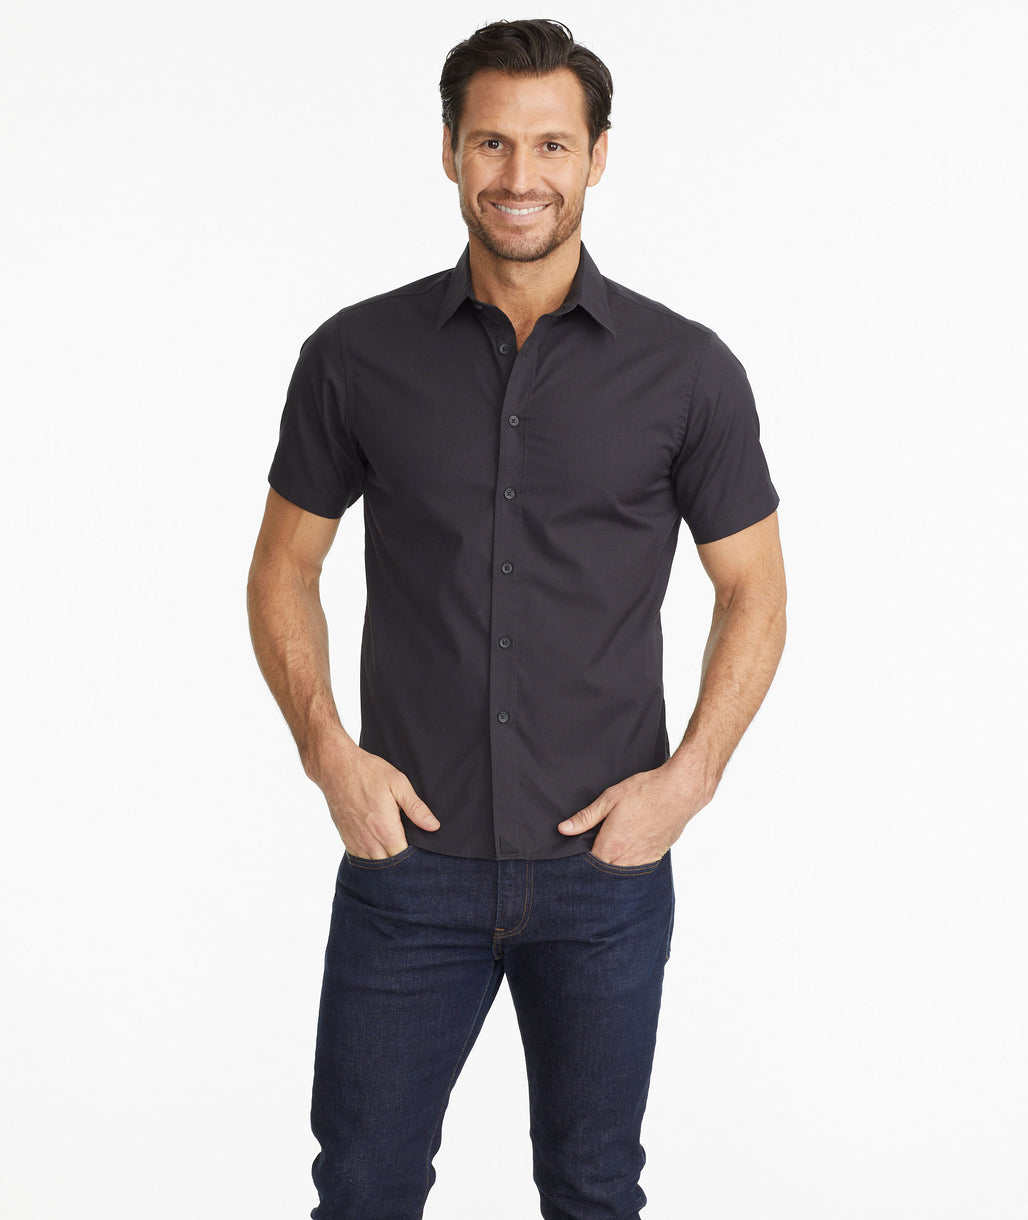 Model wearing a Black Classic Short-Sleeve Coufran Shirt